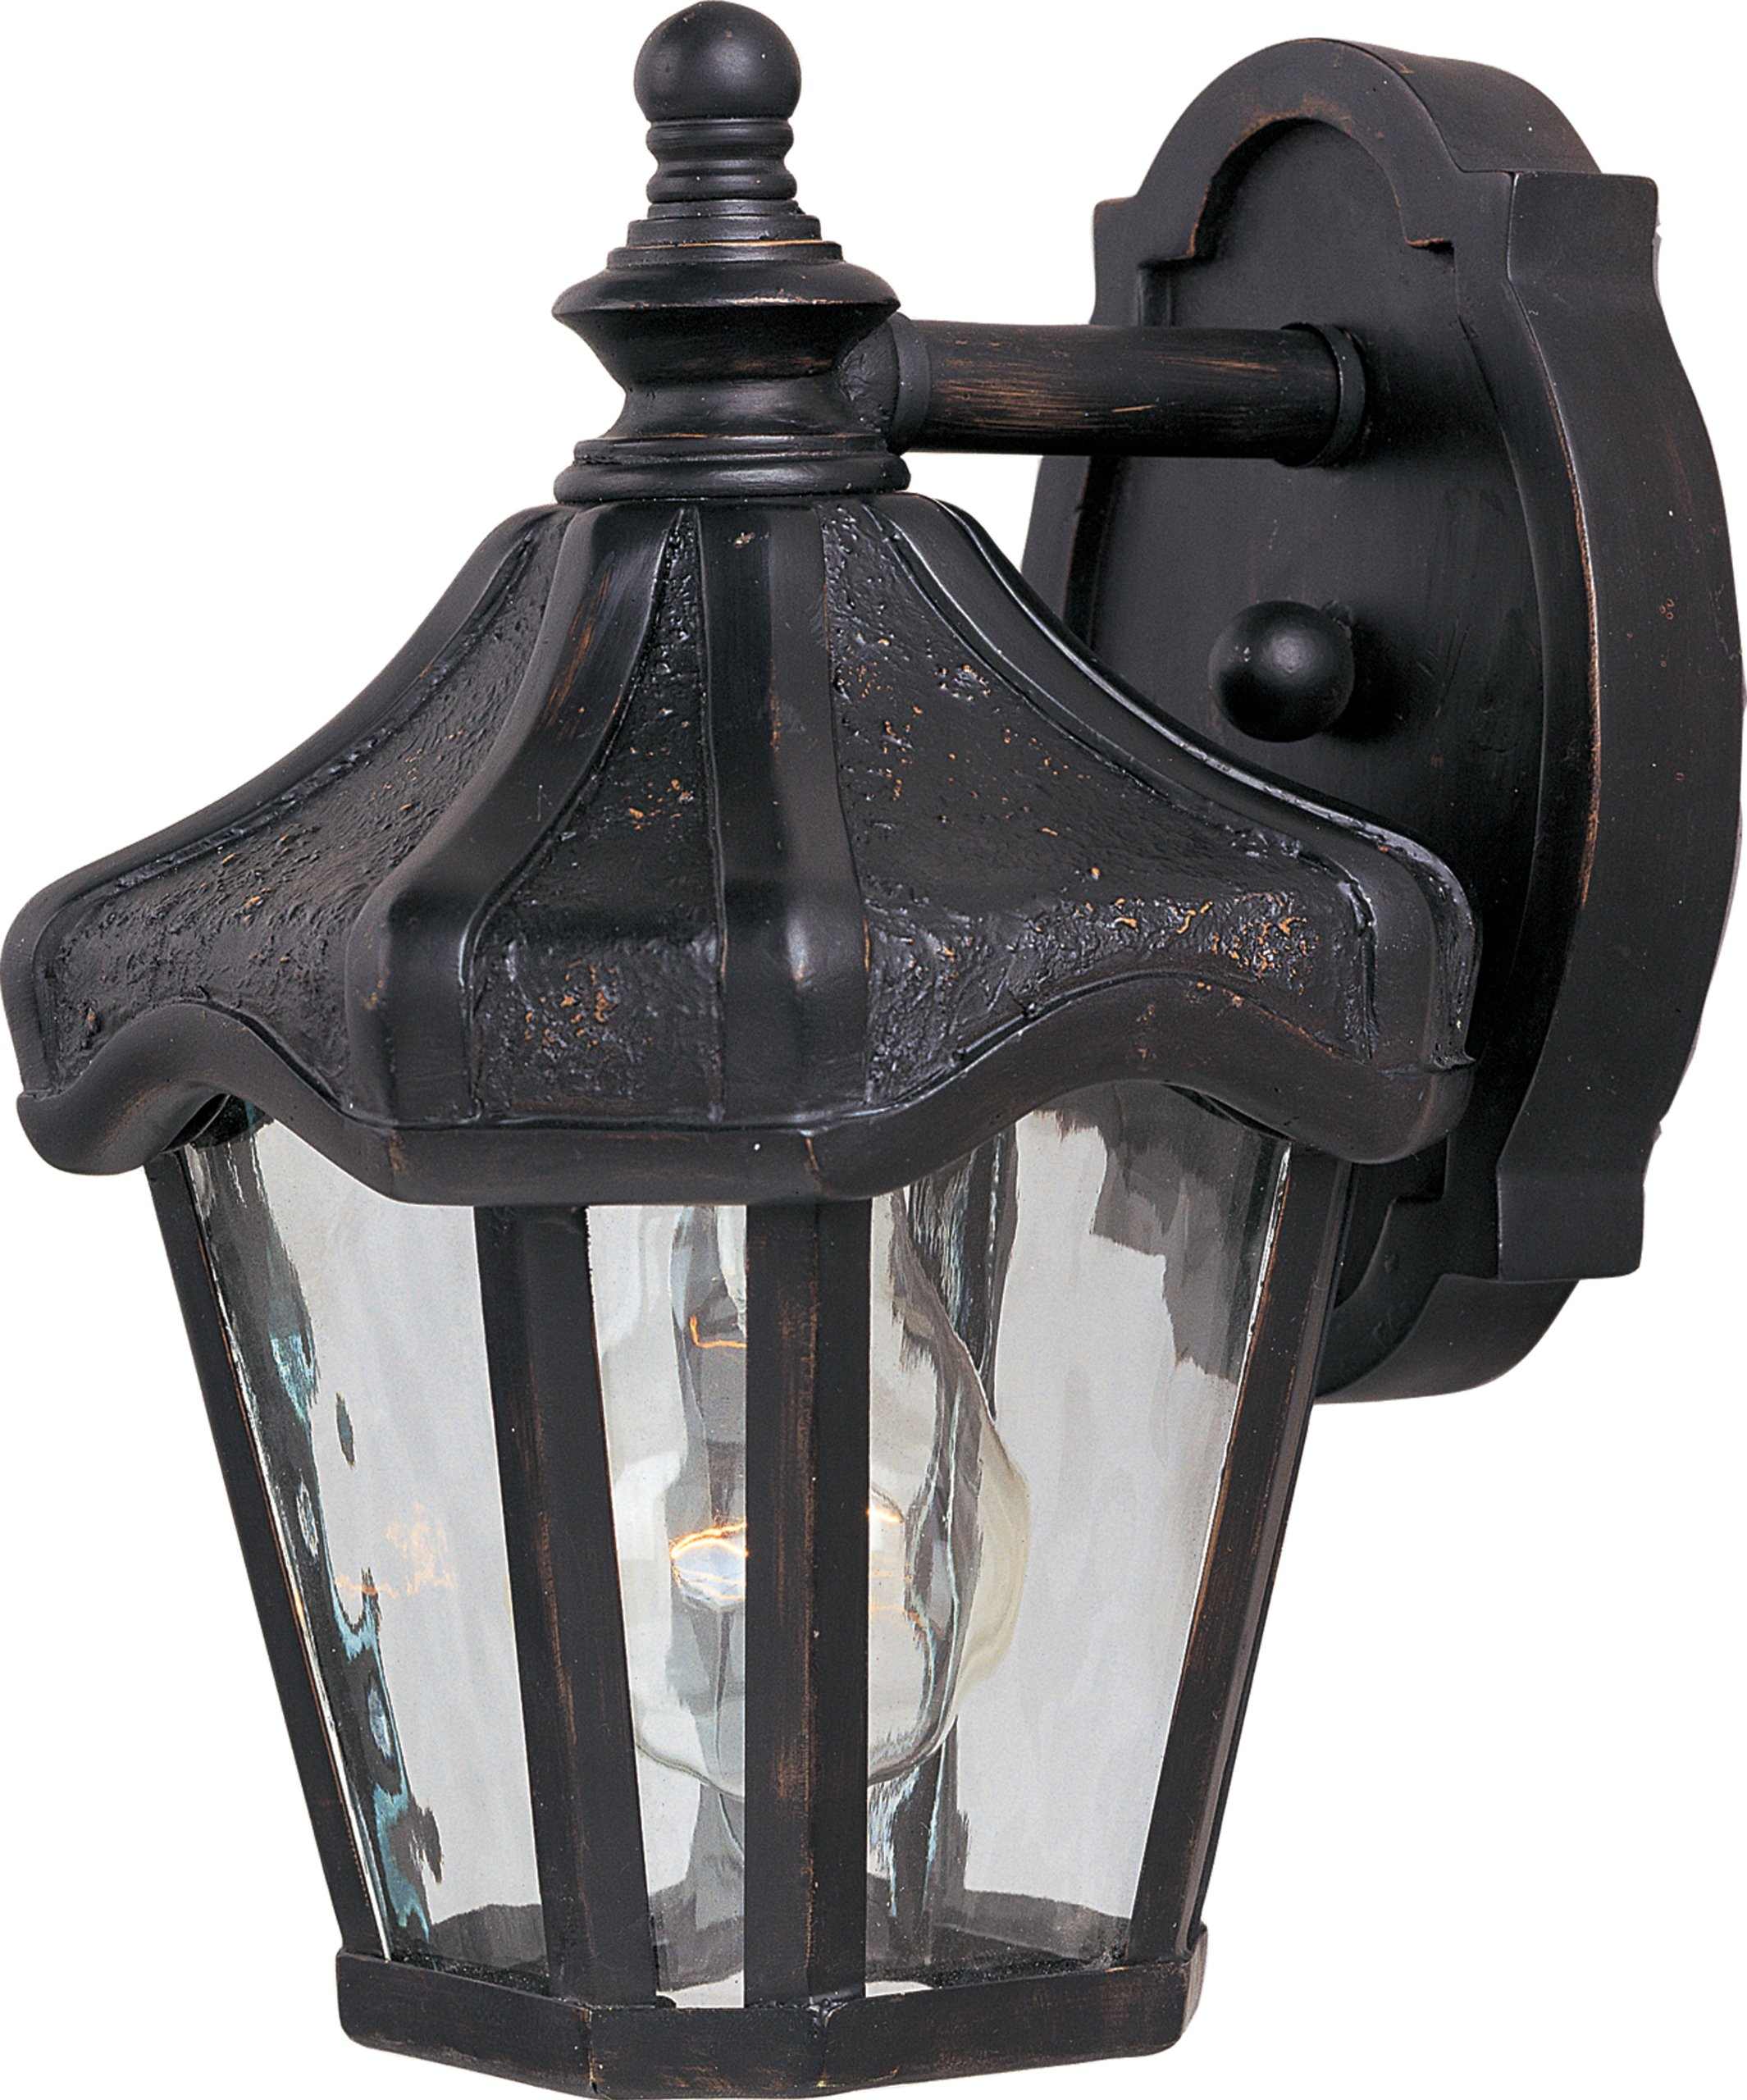 Maxim 40268WGOB Garden VX 1-Light Outdoor Wall Lantern, Oriental Bronze Finish, Water Glass Glass, MB Incandescent Bulb , 13W Max., Dry Safety Rating, 2700K Color Temp, Glass Shade Material, 2400 Rated Lumens